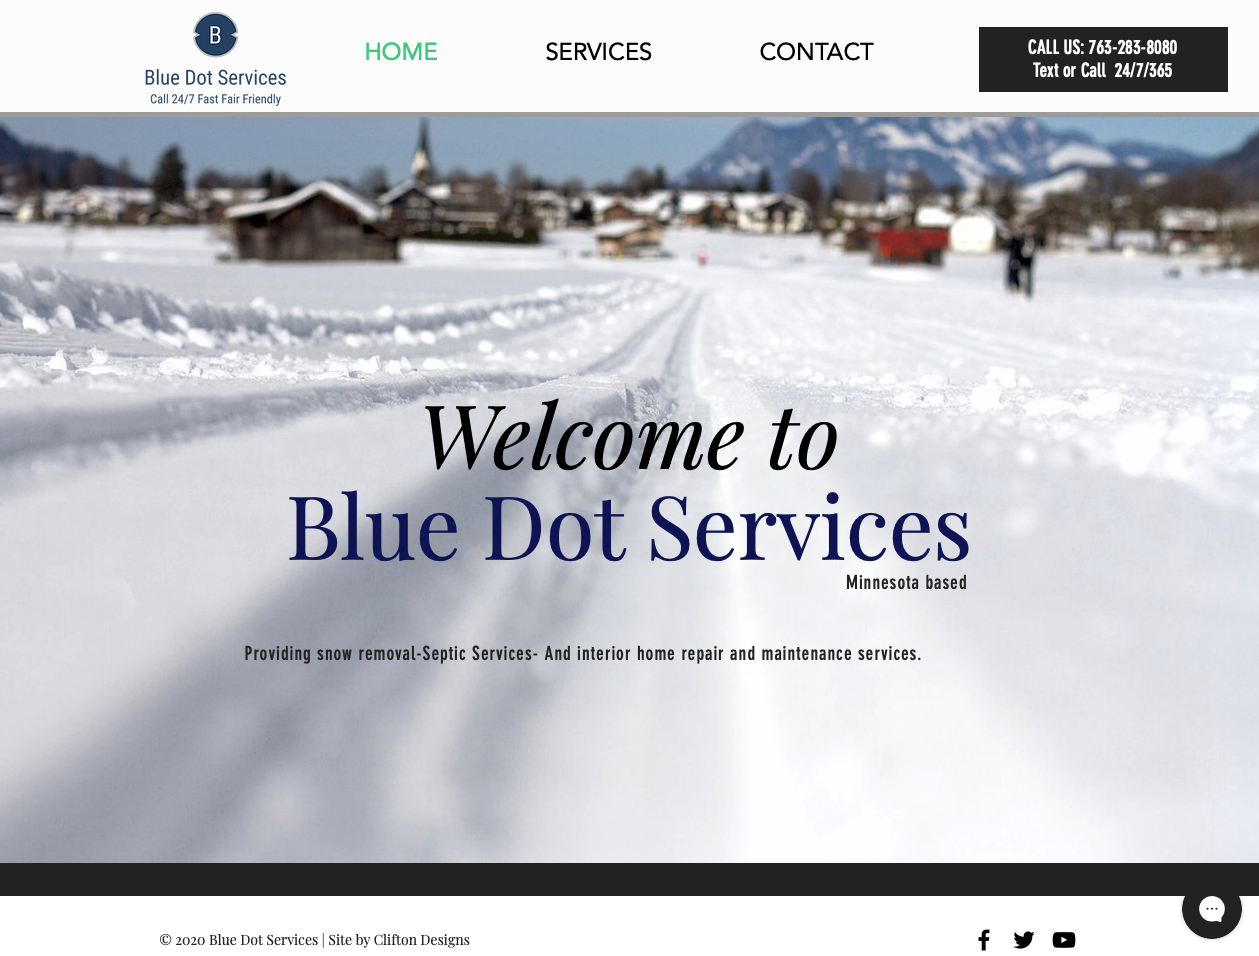 Blue Dot Services